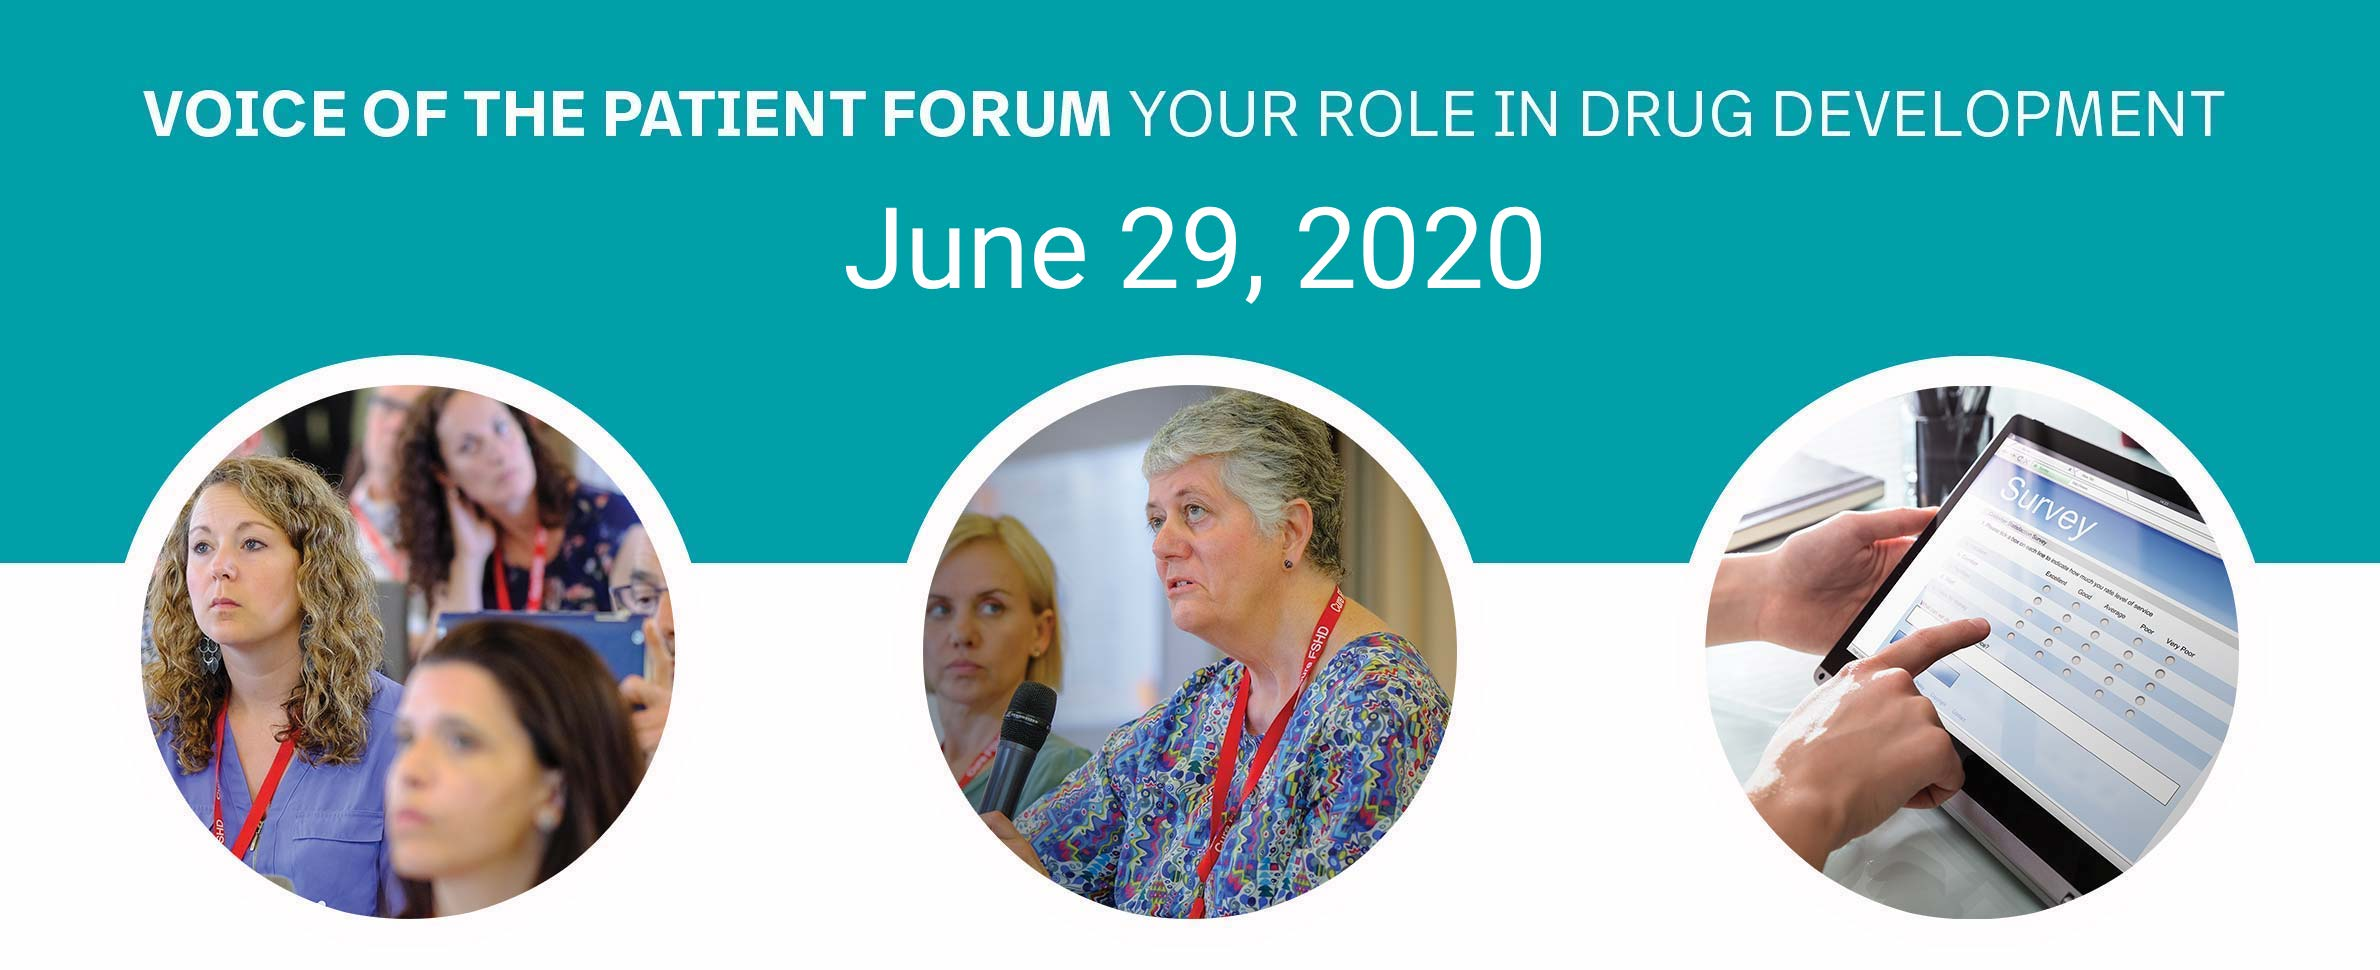 Voice of the patient forum your role in drug development. April 21, 2020